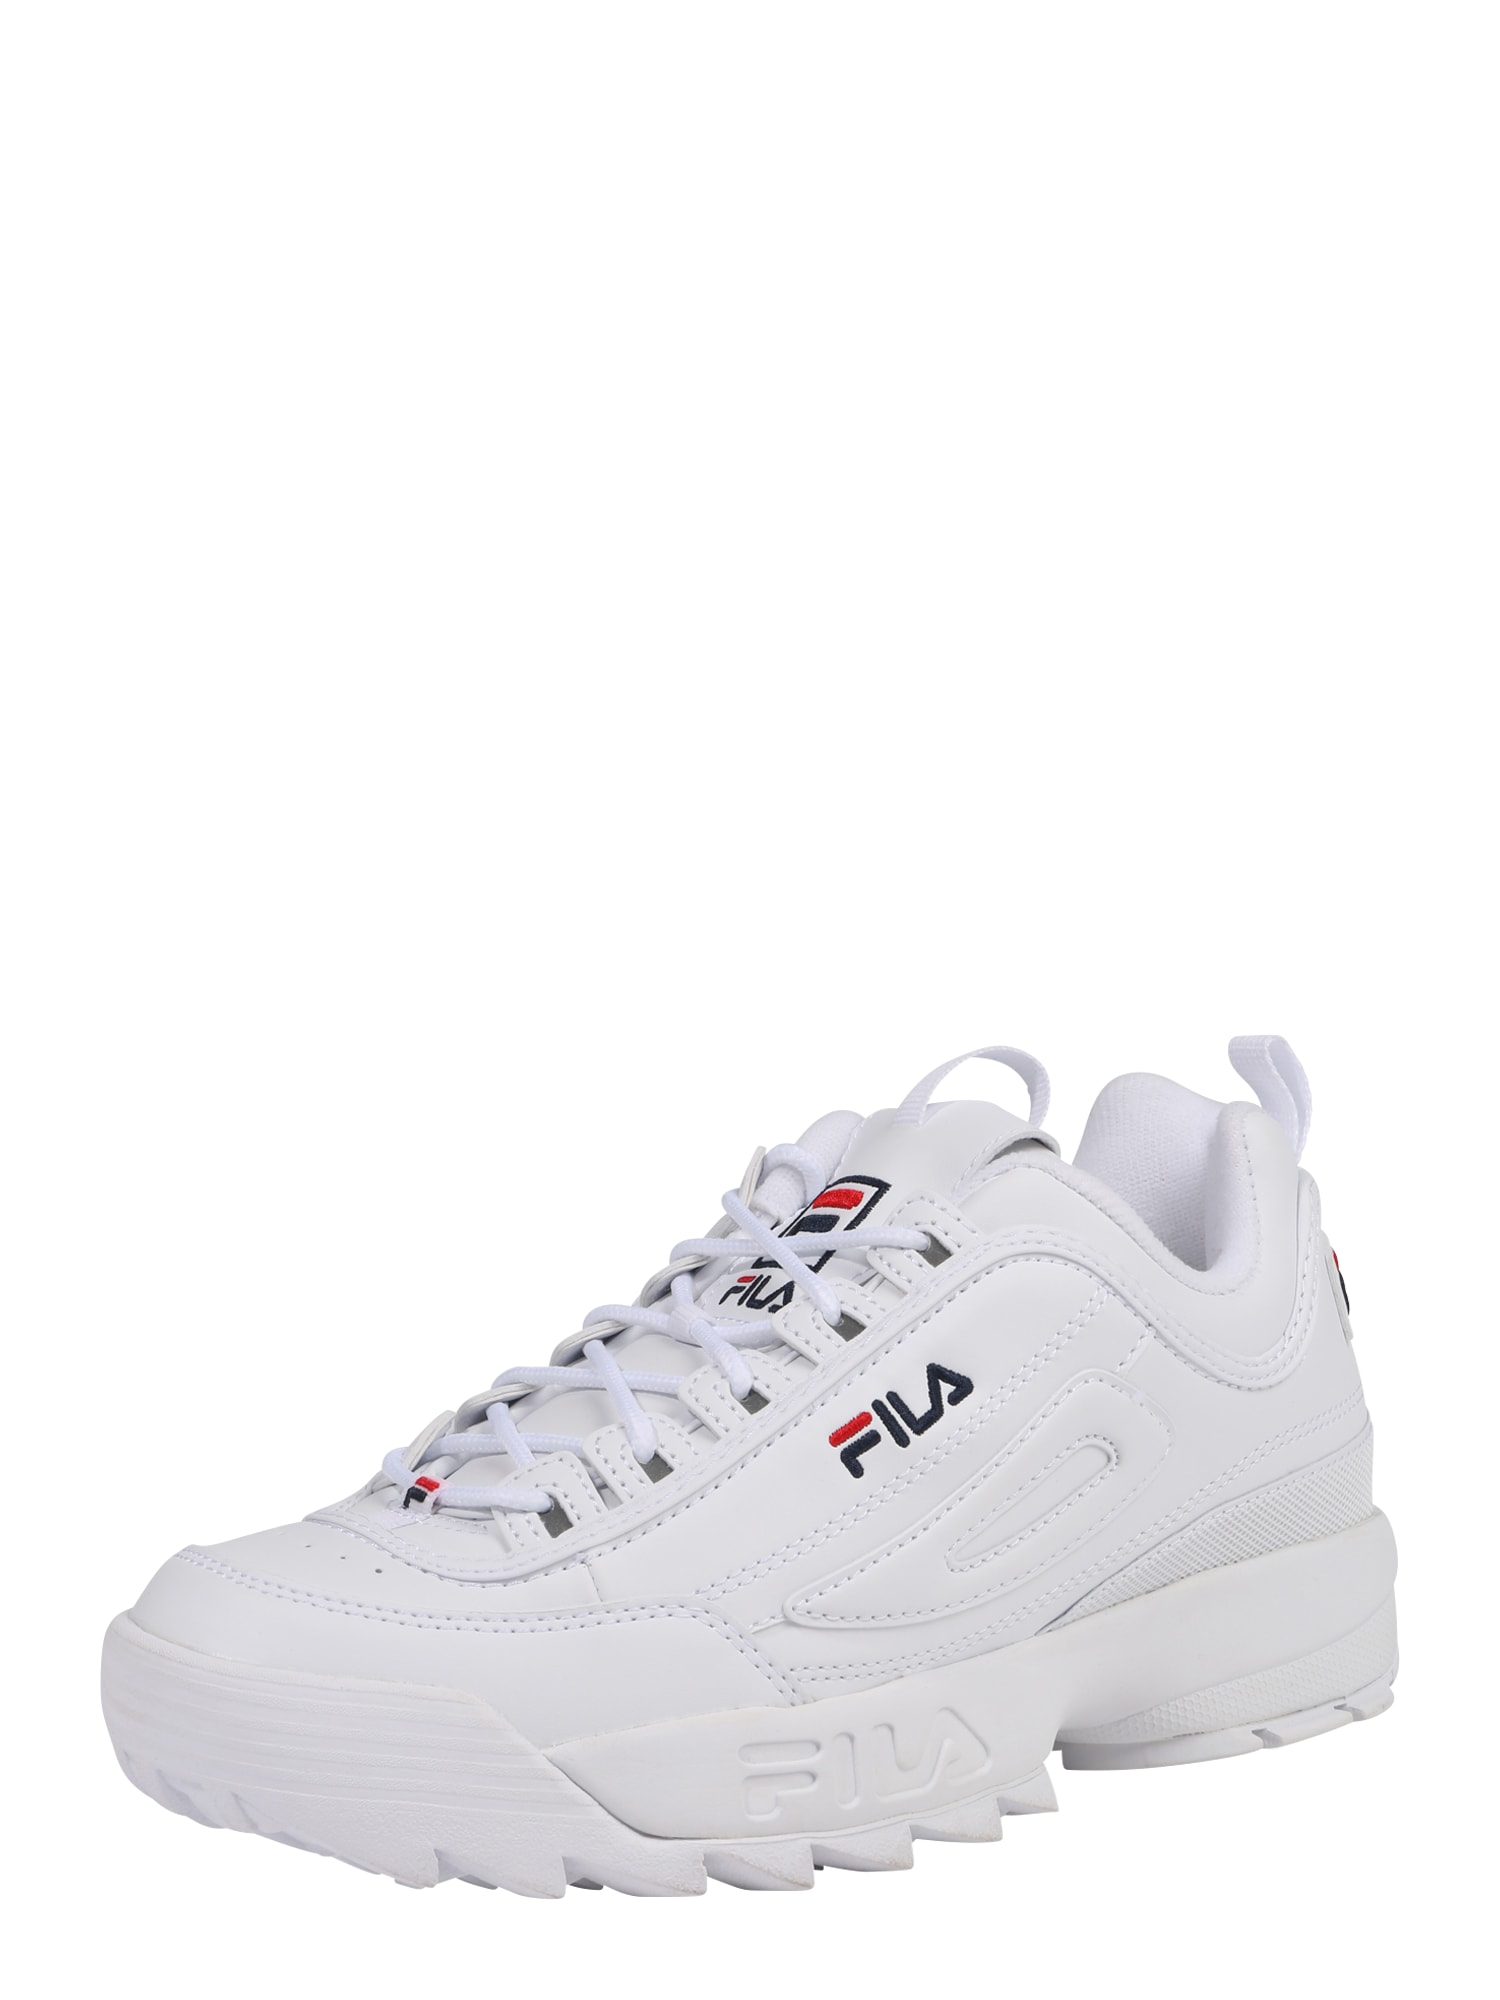 FILA, Heren Sneakers laag 'Disruptor', wit